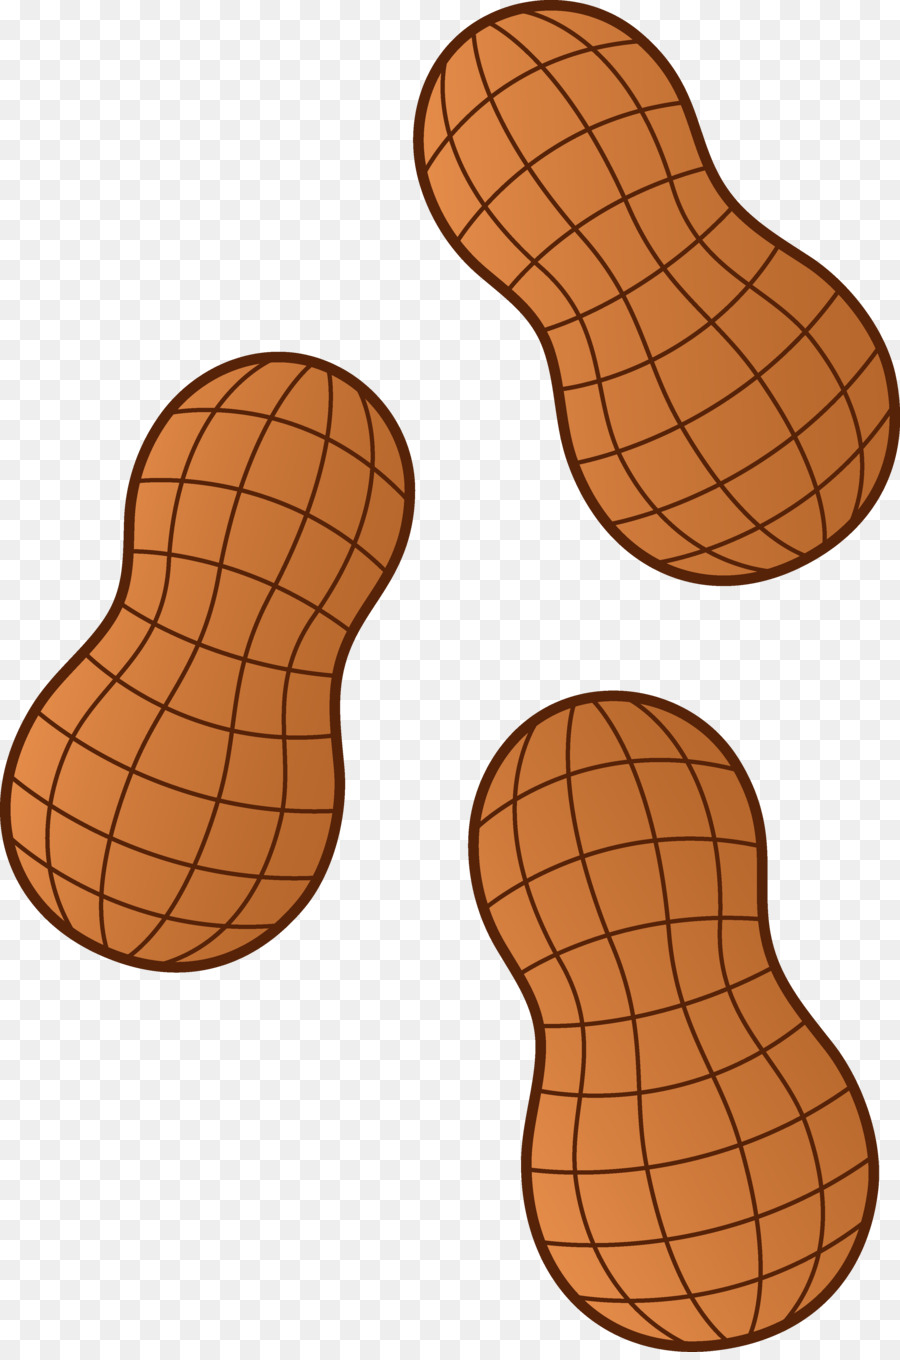 Boiled peanuts circus peanut clip art nuts cliparts download jpg